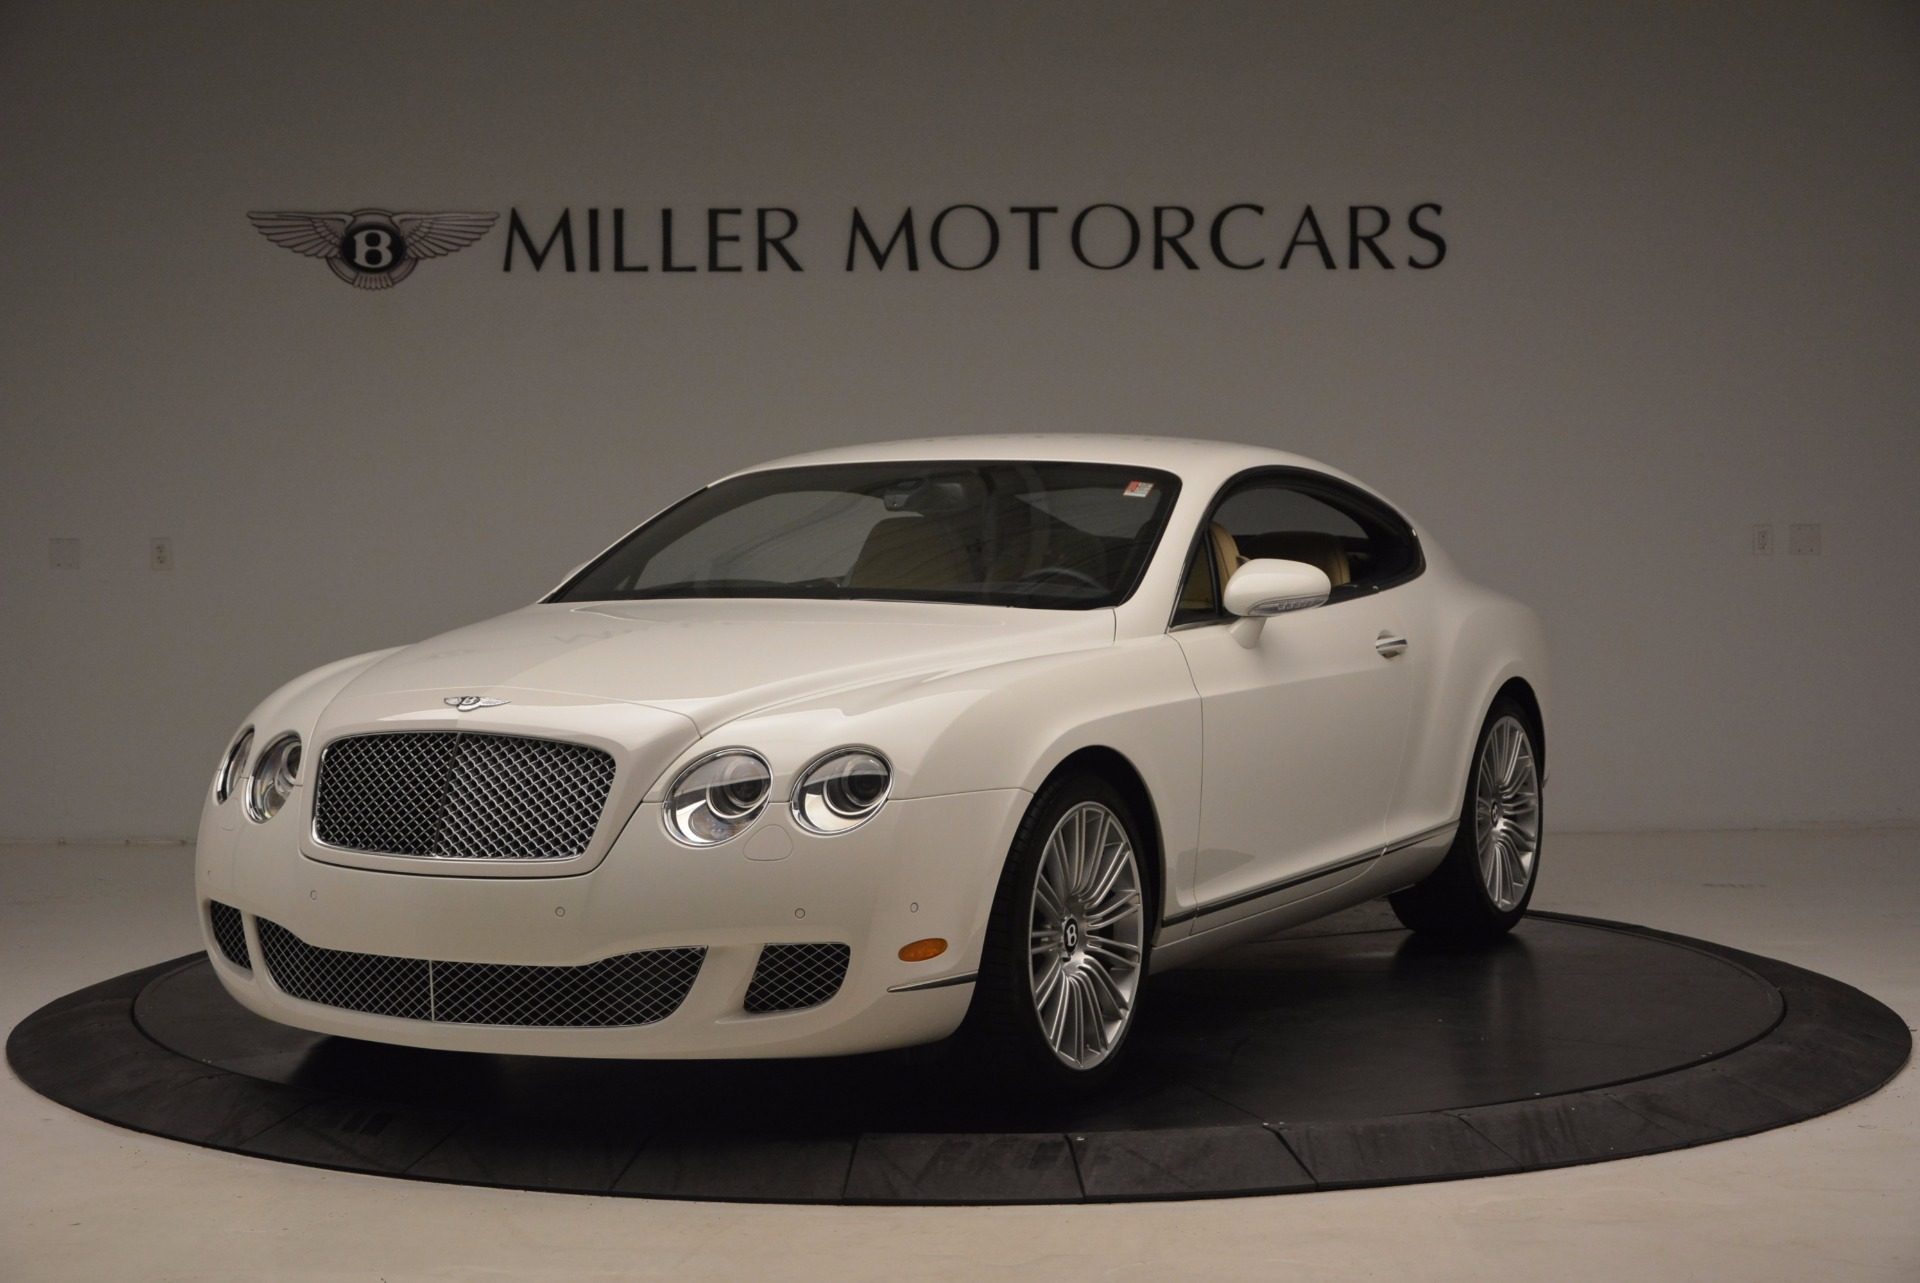 Used 2008 Bentley Continental GT Speed for sale Sold at Pagani of Greenwich in Greenwich CT 06830 1